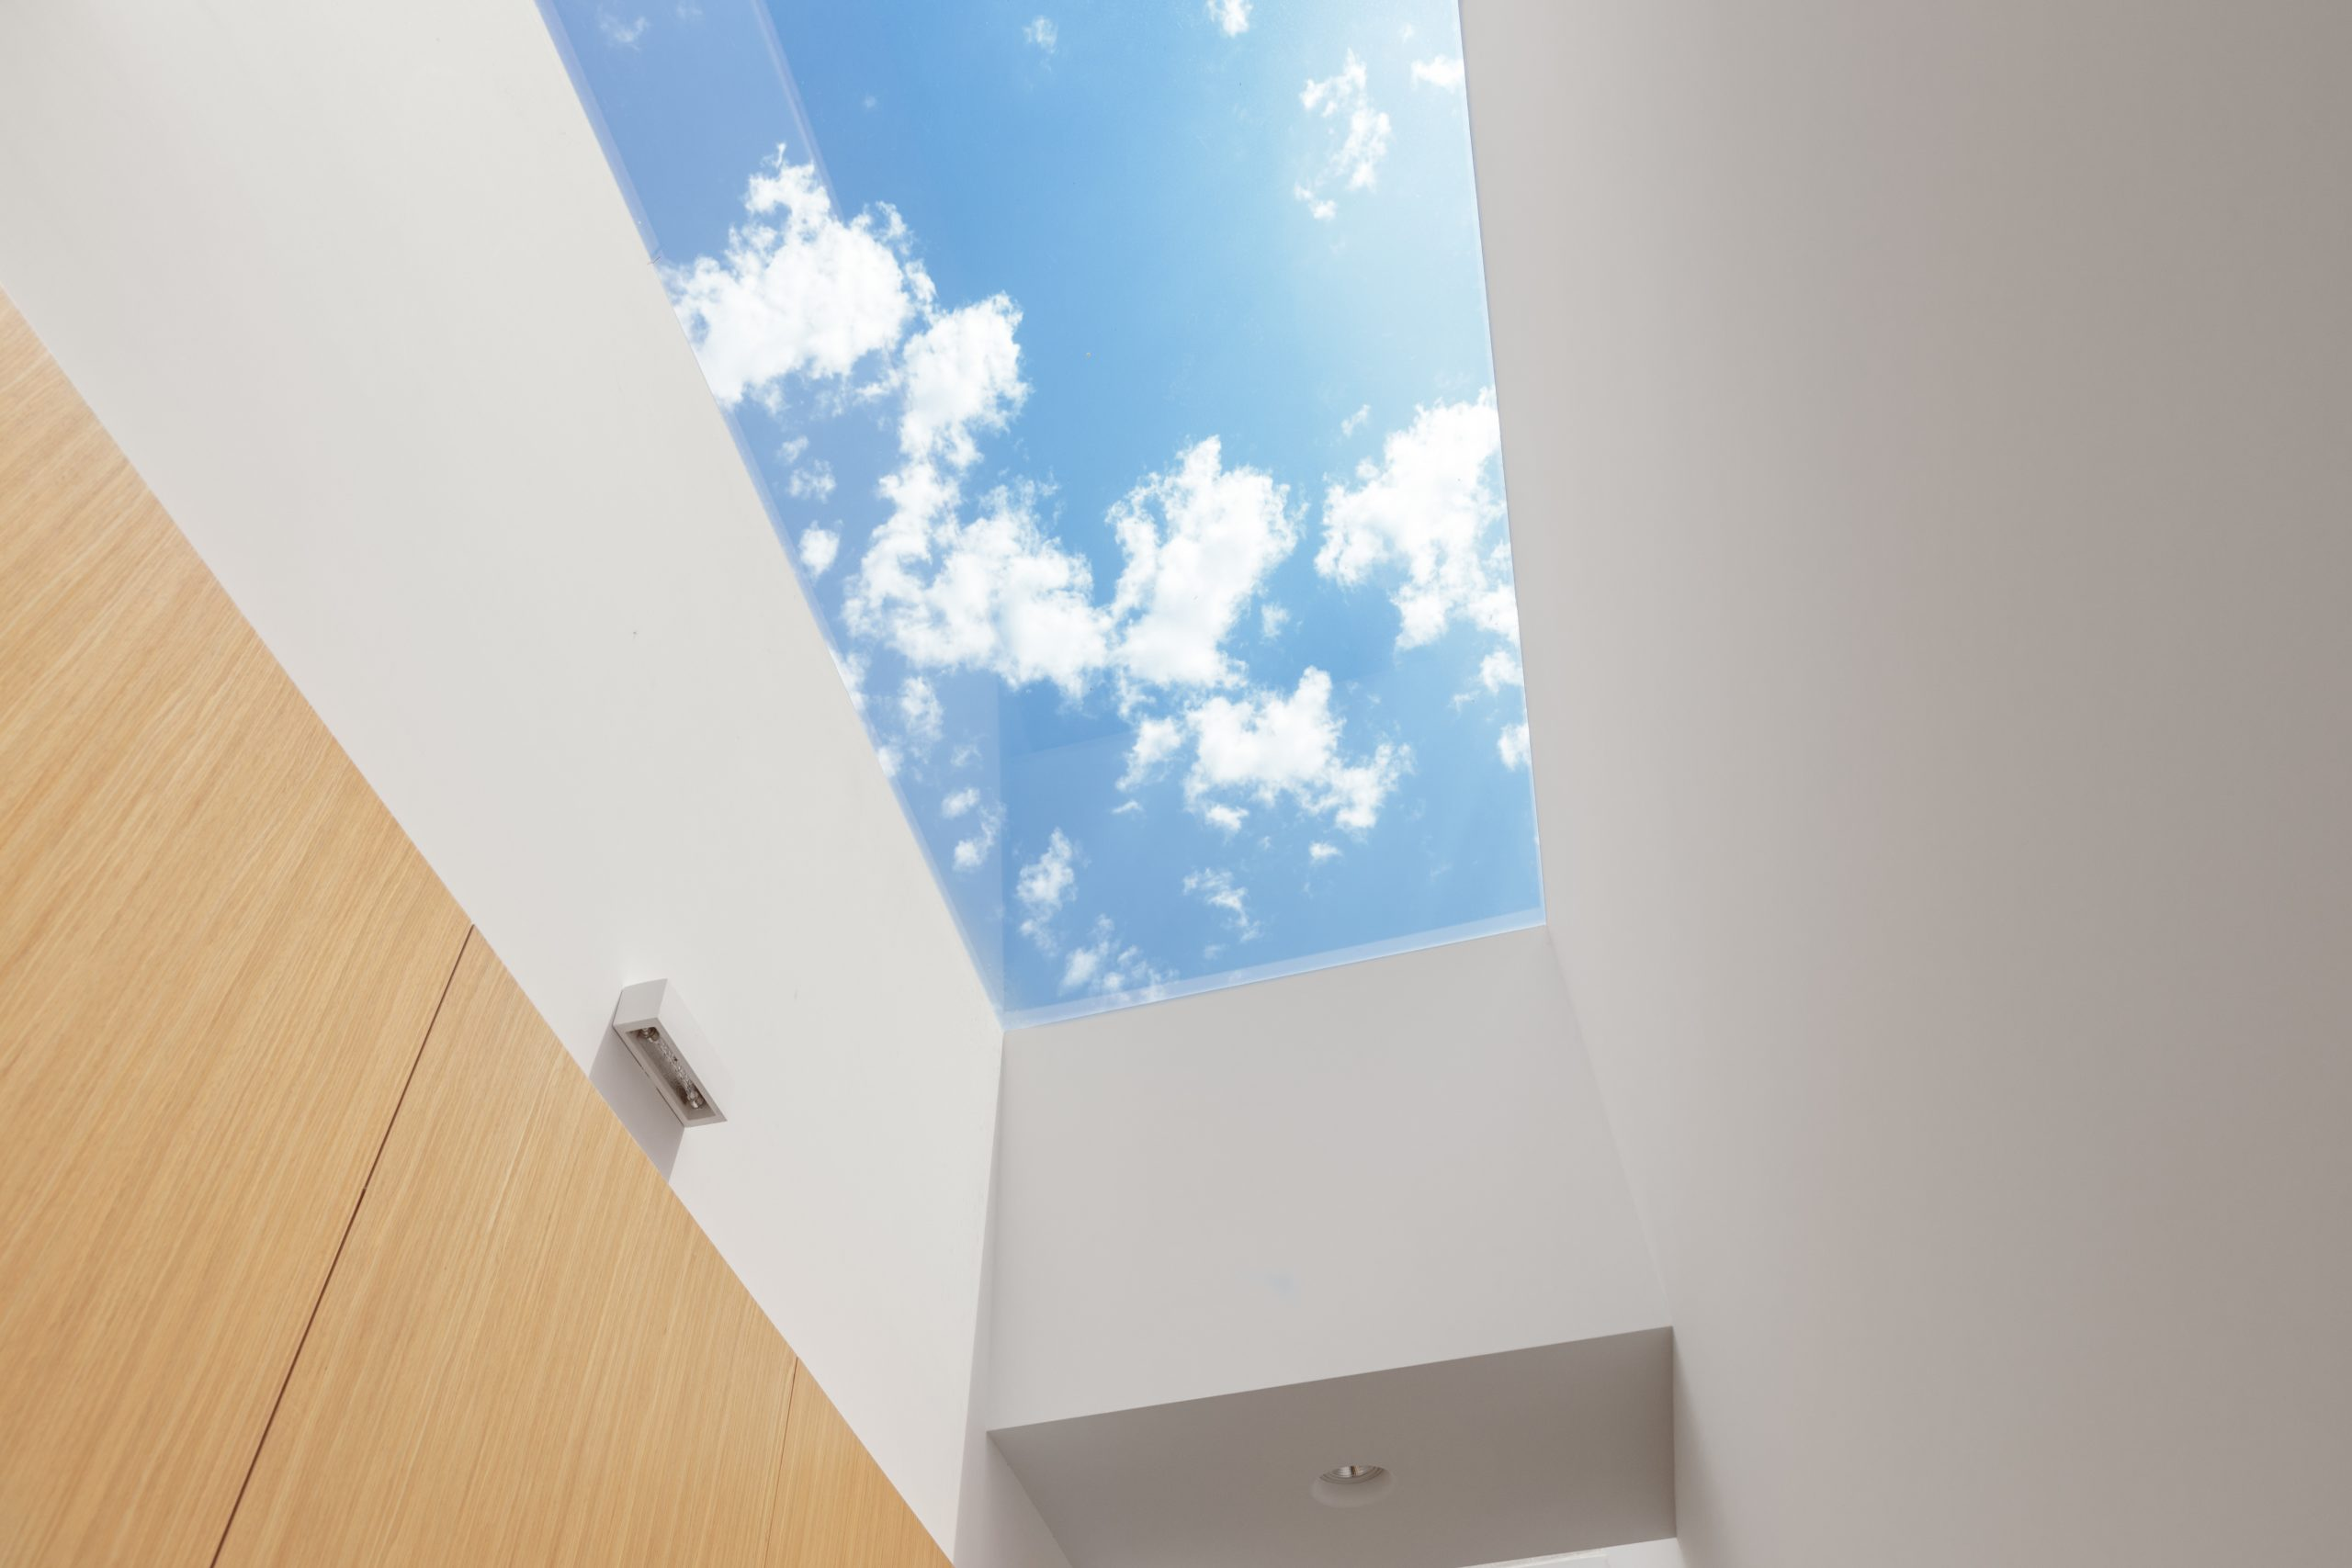 Solatube skylight in a hallway.